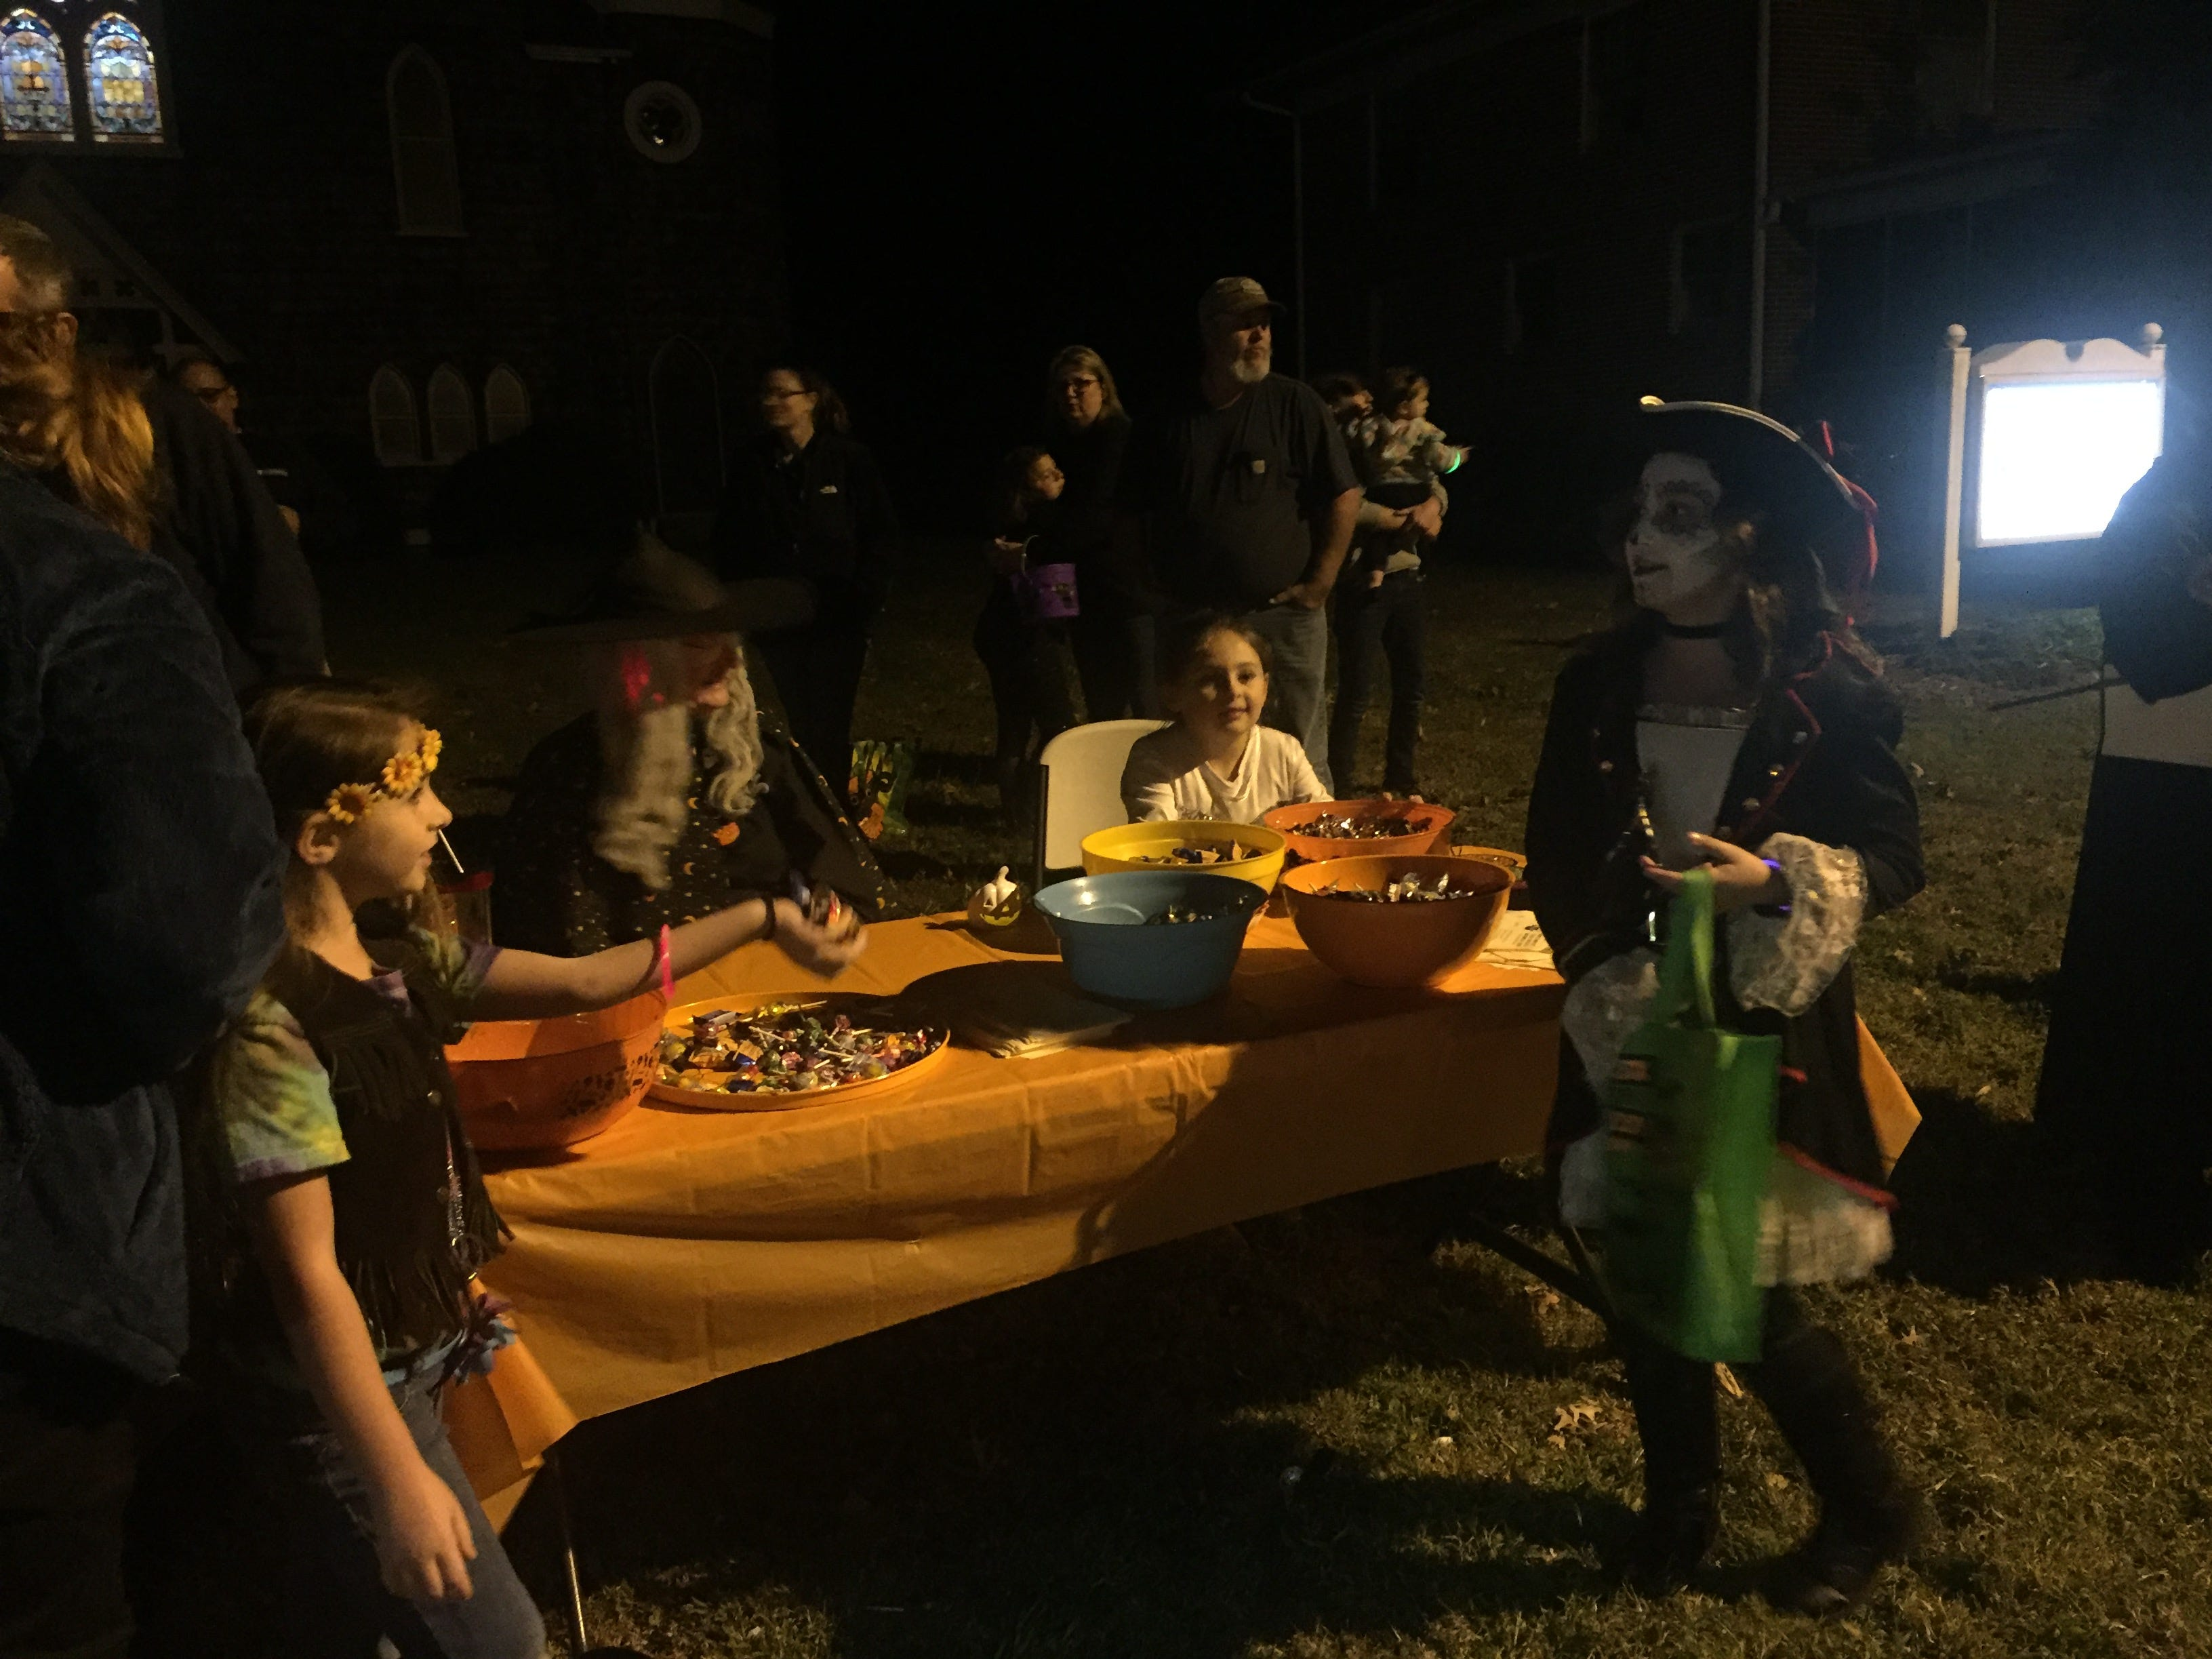 Volunteers at Market Street United Methodist Church in Onancock, Virginia pass out candy to trick-or-treaters on Wednesday, Oct. 31, 2018.